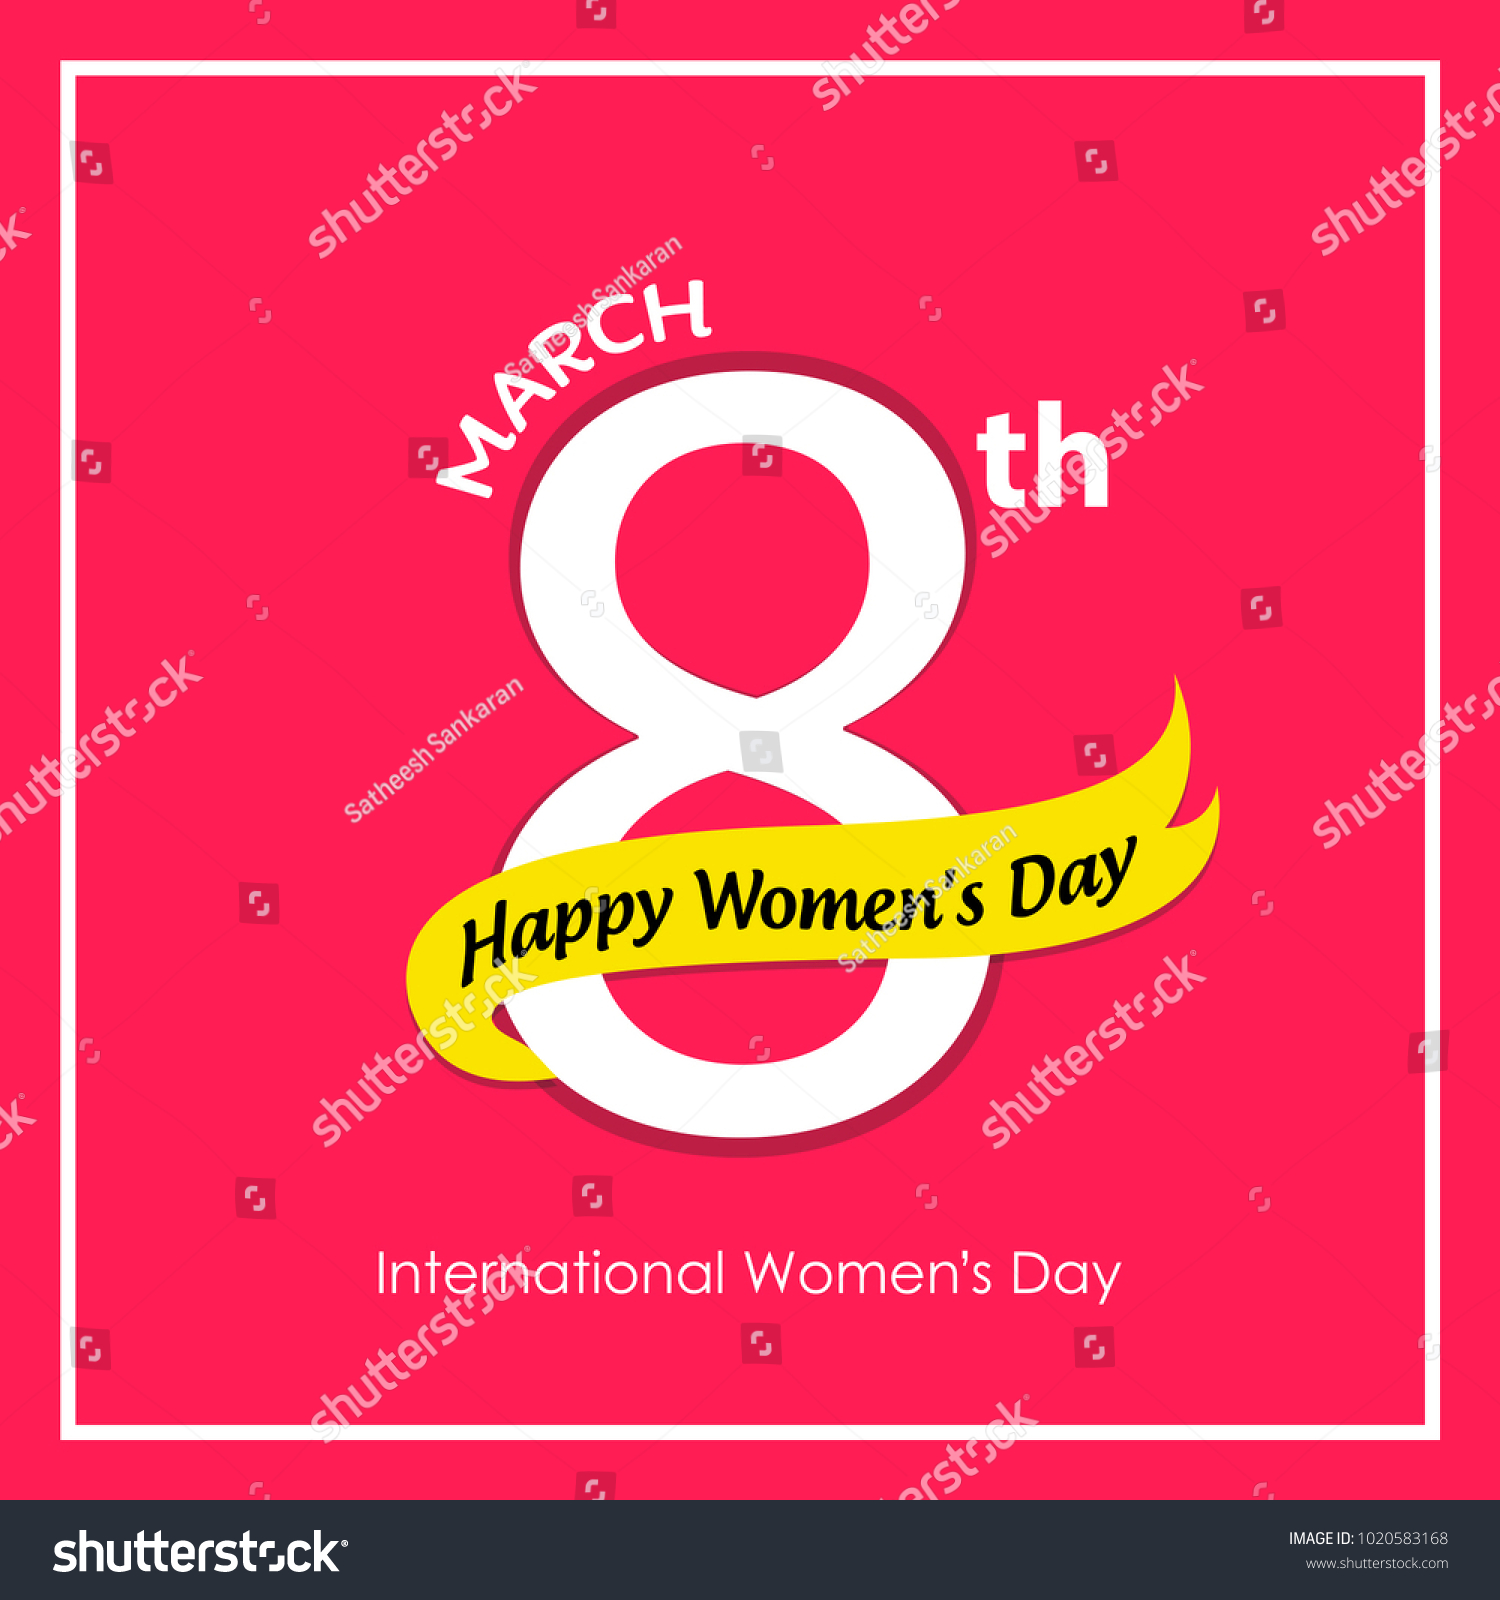 Happy womens day greetings 8th march stock vector 1020583168 happy womens day greetings for 8th march with creative calligraphy and icon international womens day kristyandbryce Gallery